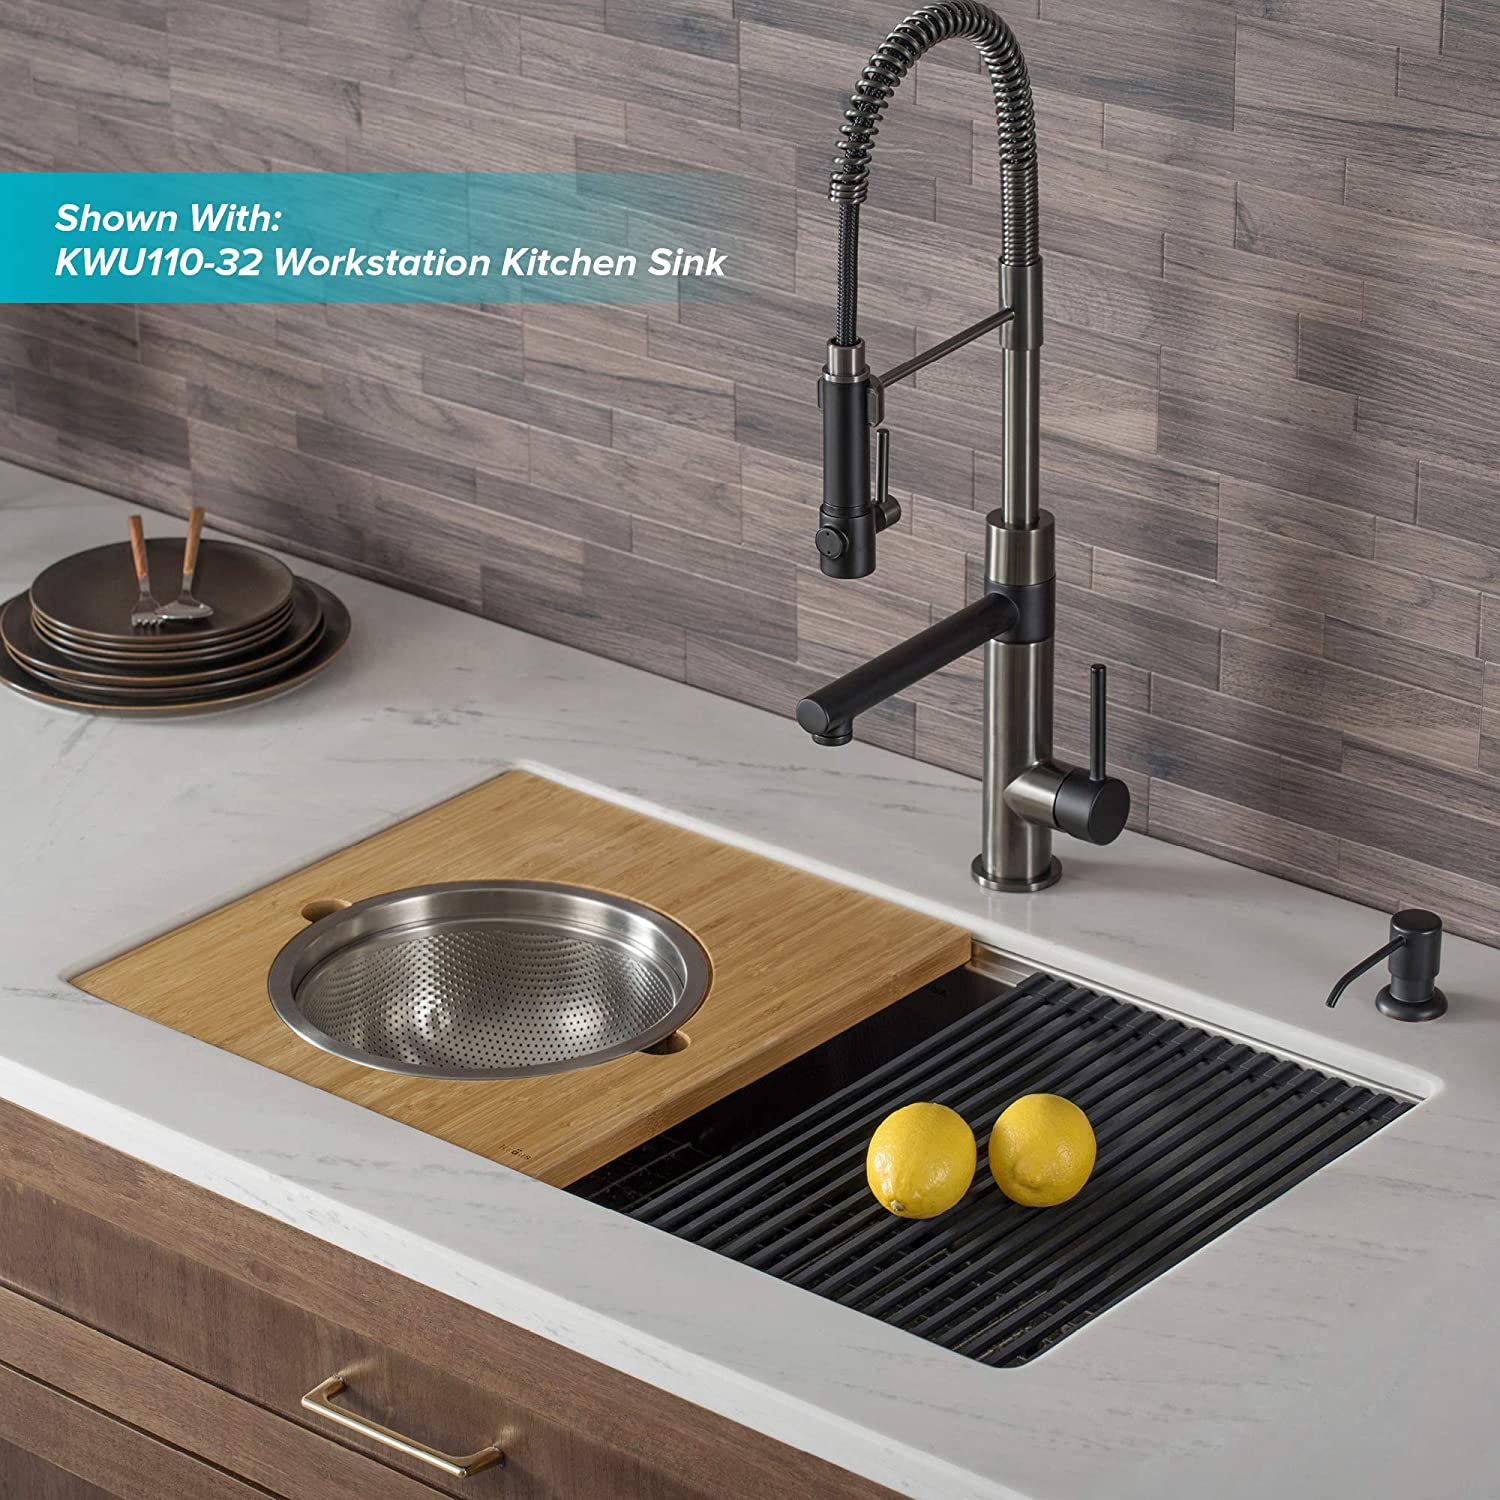 Kraus KPF-1603MBSB-DP03SB Artek Pro 2-Function Commercial Style Pre-Rinse Kitchen Faucet with Pot Filler and Deck Plate, Matte Black/Black Stainless Steel